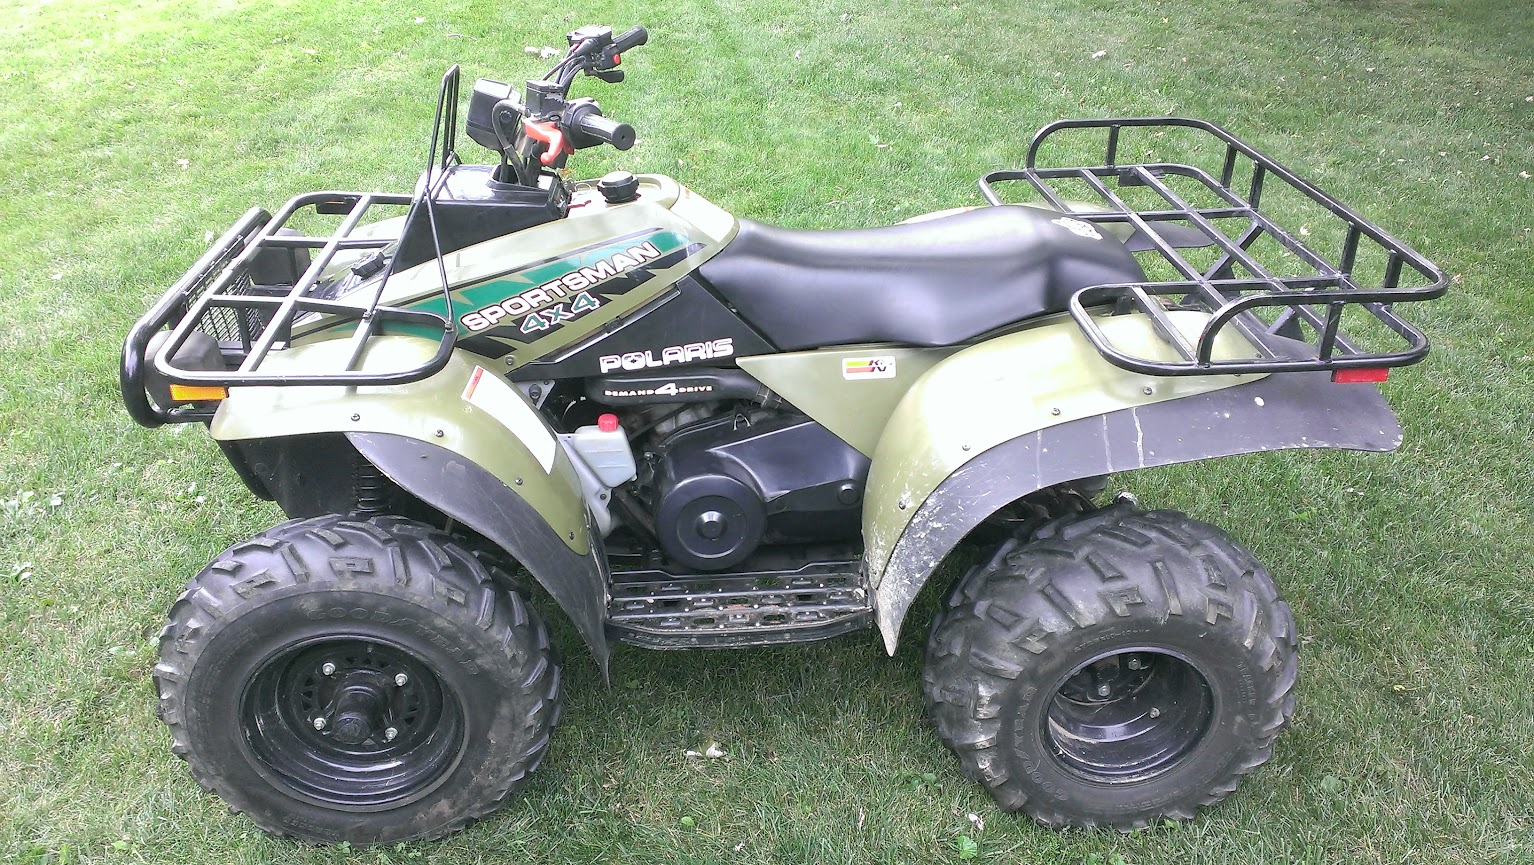 94 Polaris 400 Sportsman 4x4